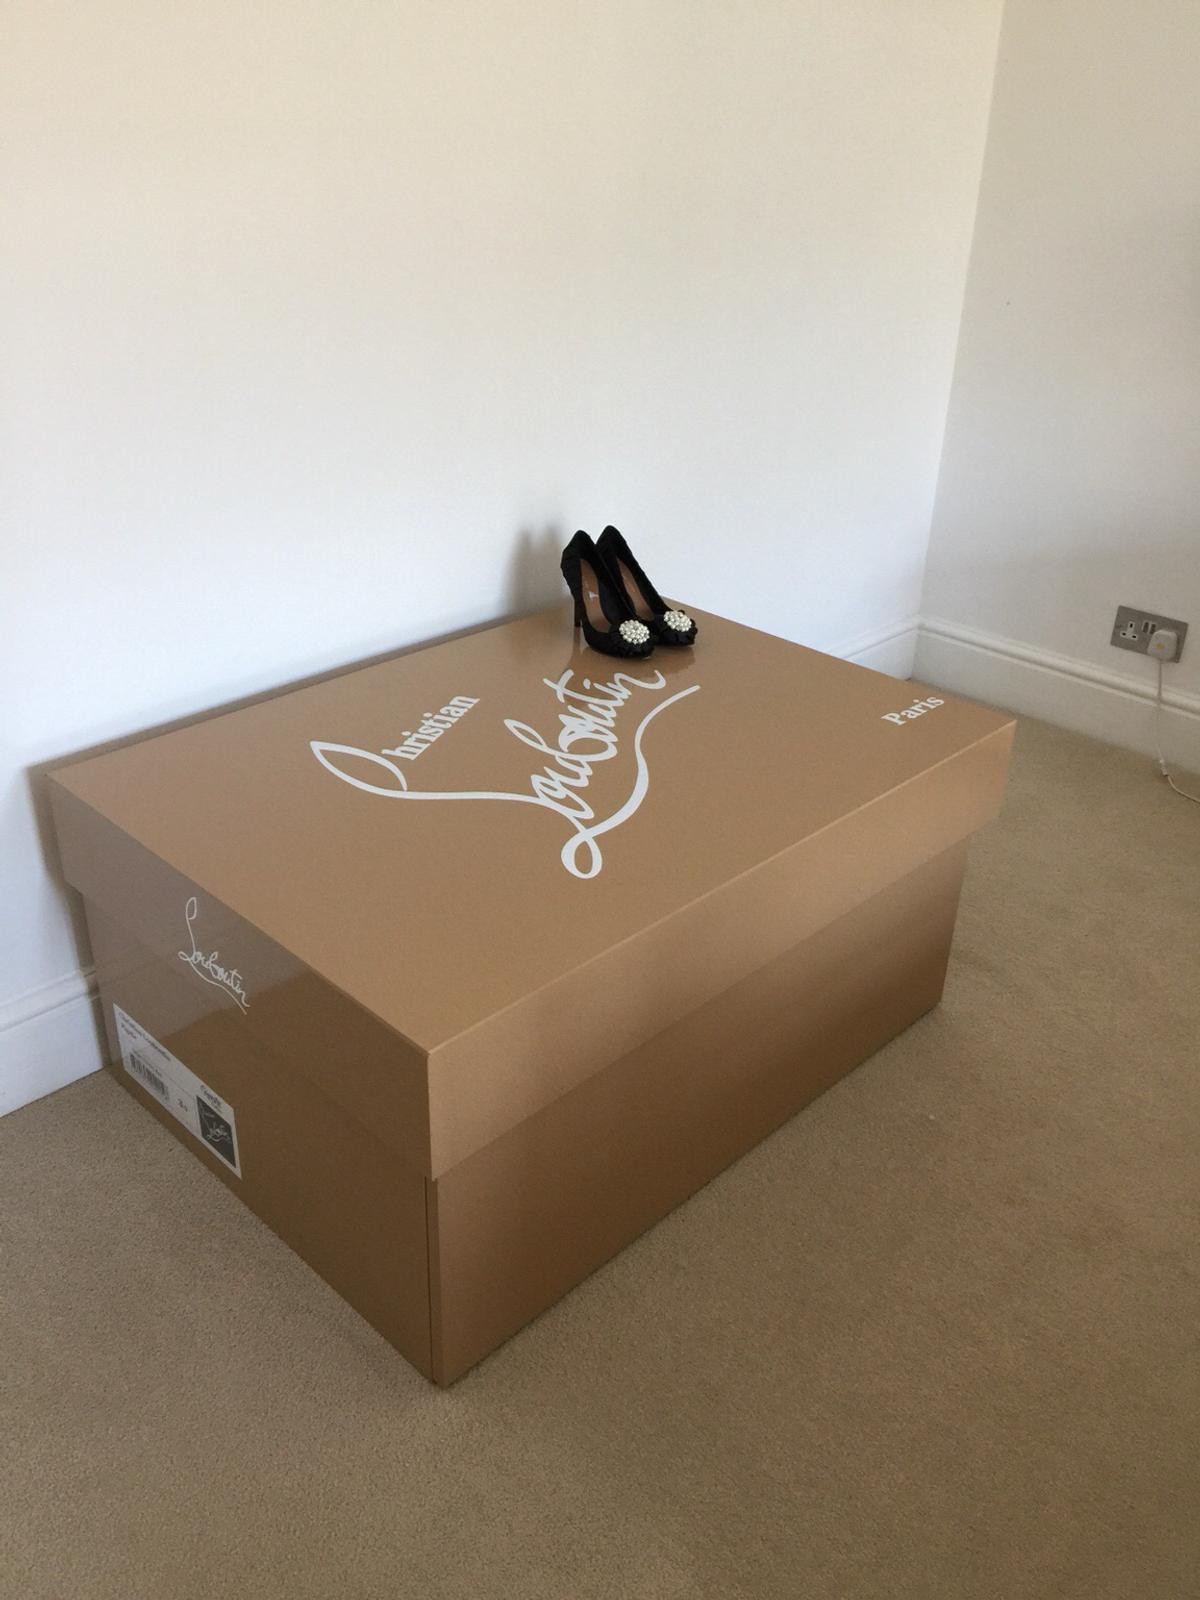 de0dbcc71ab XXL giant Custom made LOUBOUTIN shoe Box in BR7 Bromley for £250.00 ...